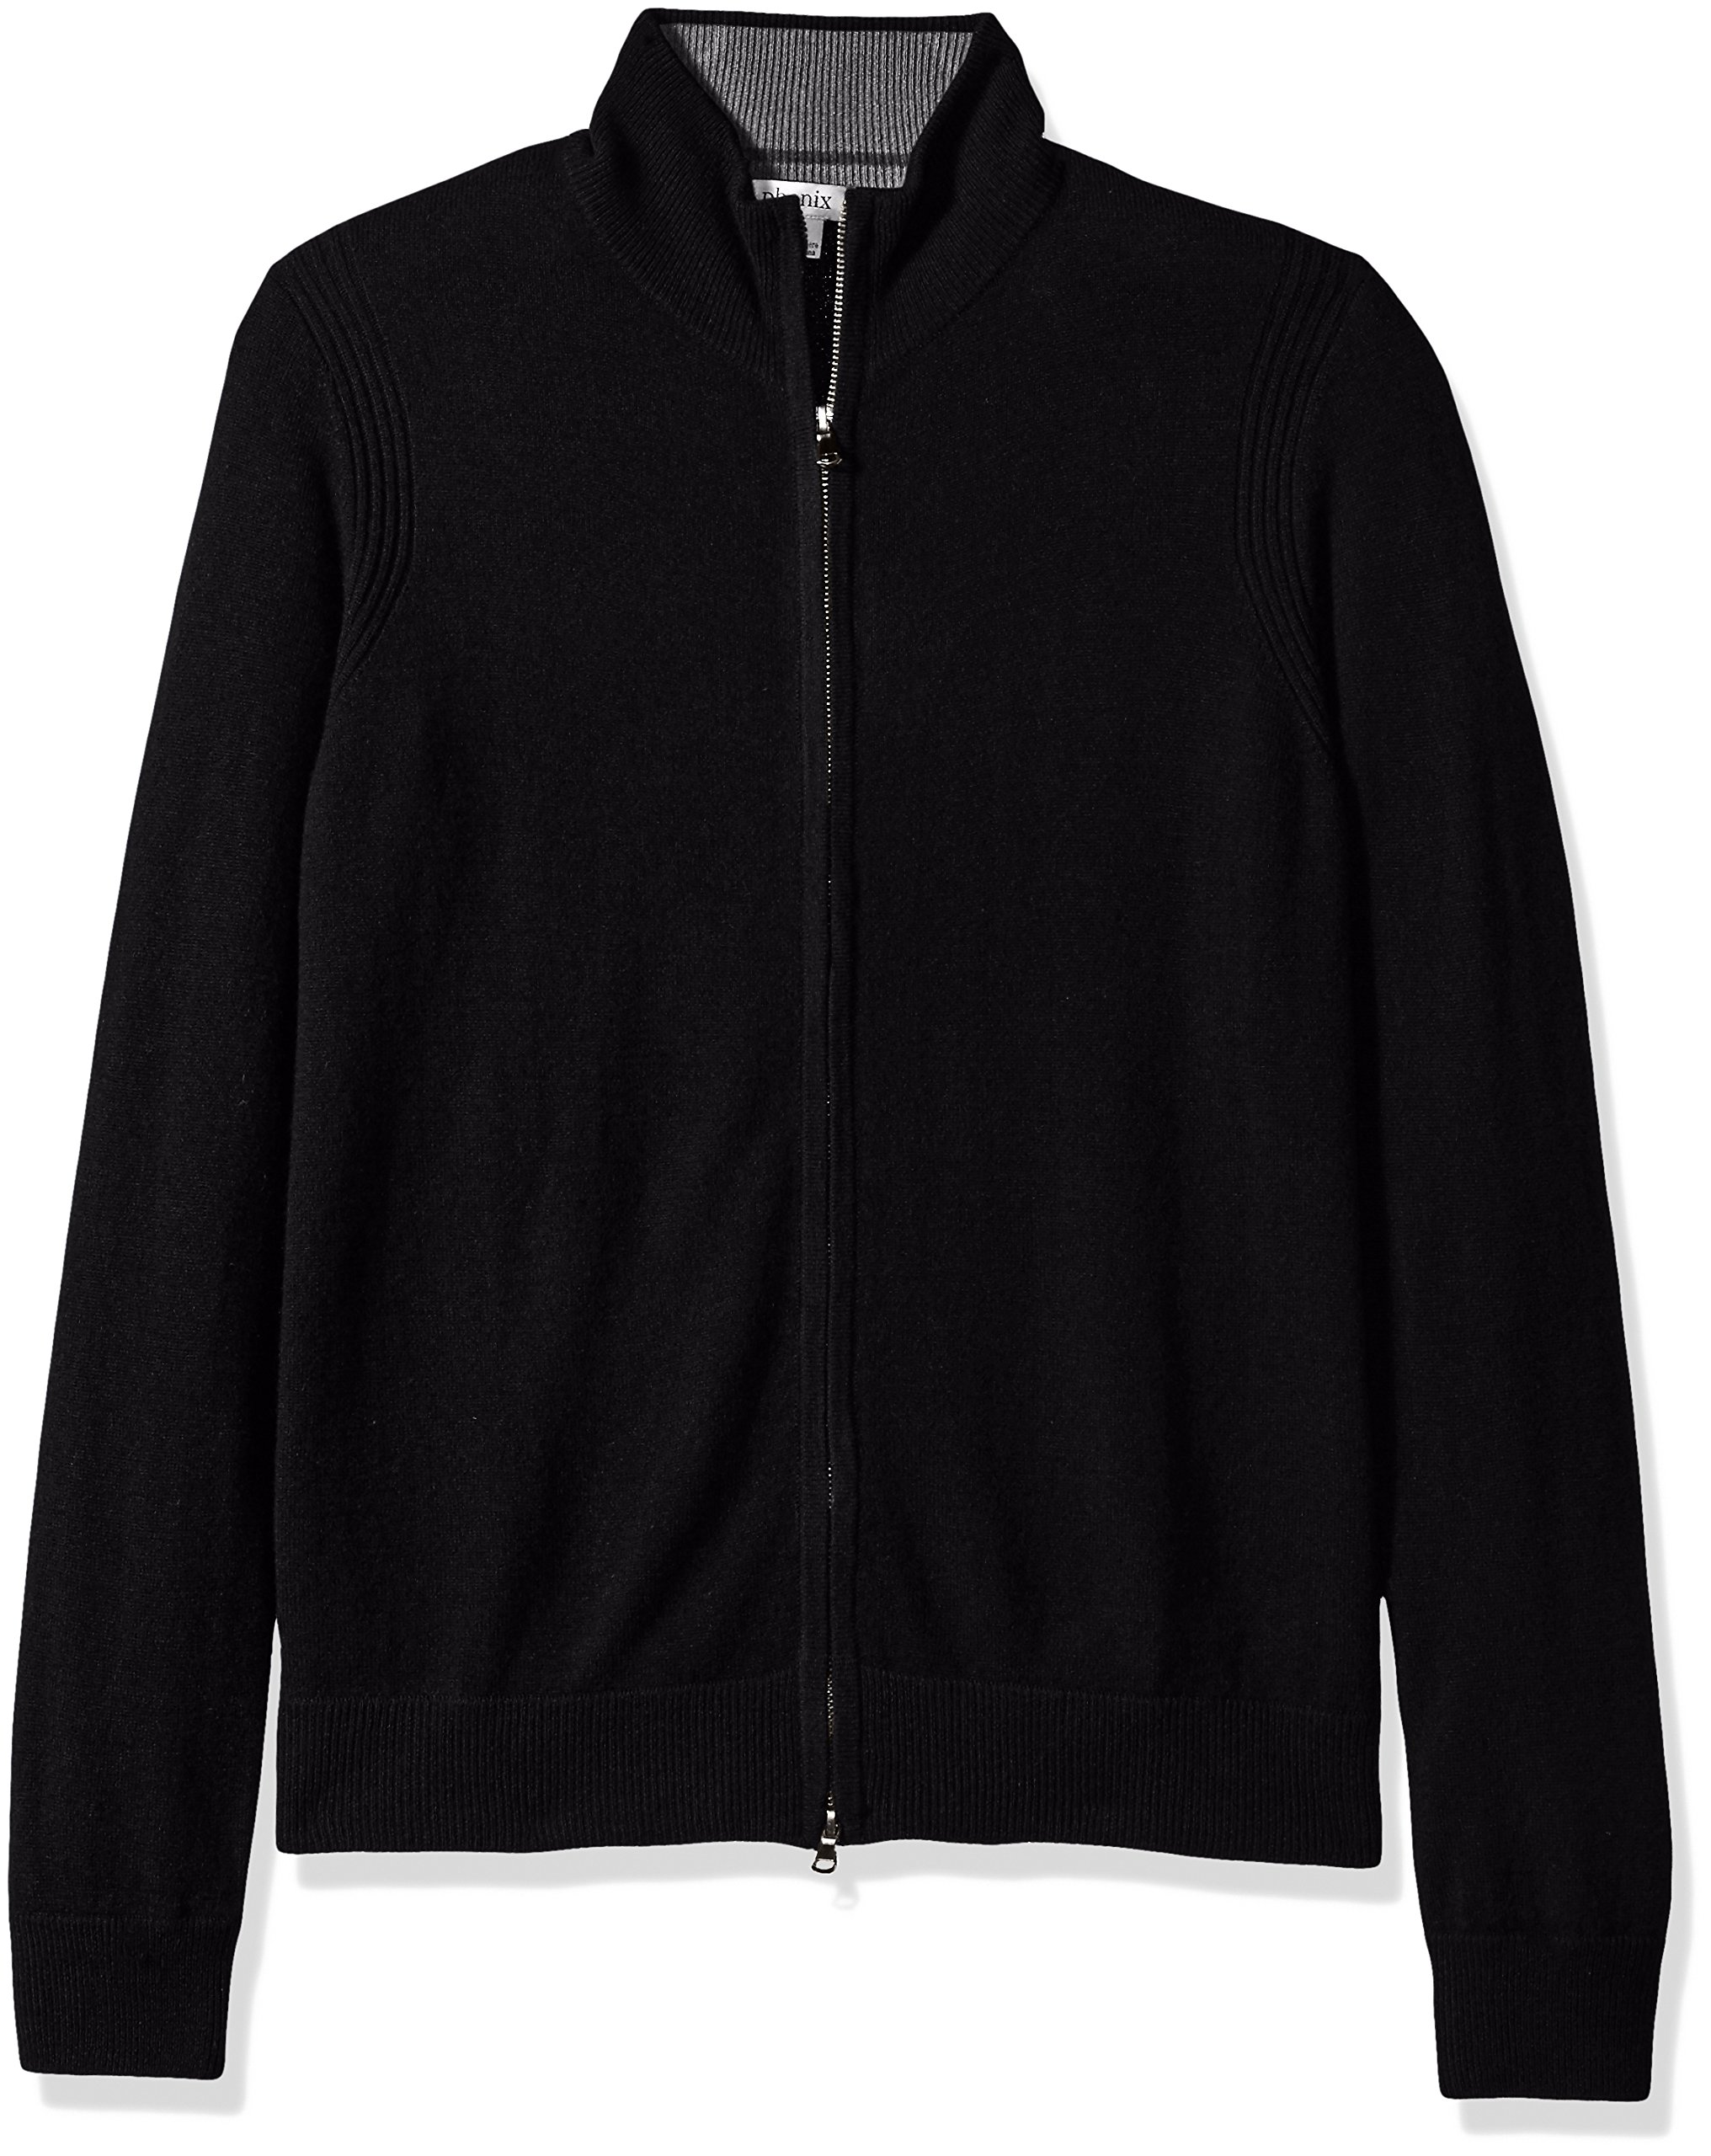 Phenix Cashmere Men's Double Zip Mock Cardigan Sweater with Color Tipping, Black/Gry, XX-Large